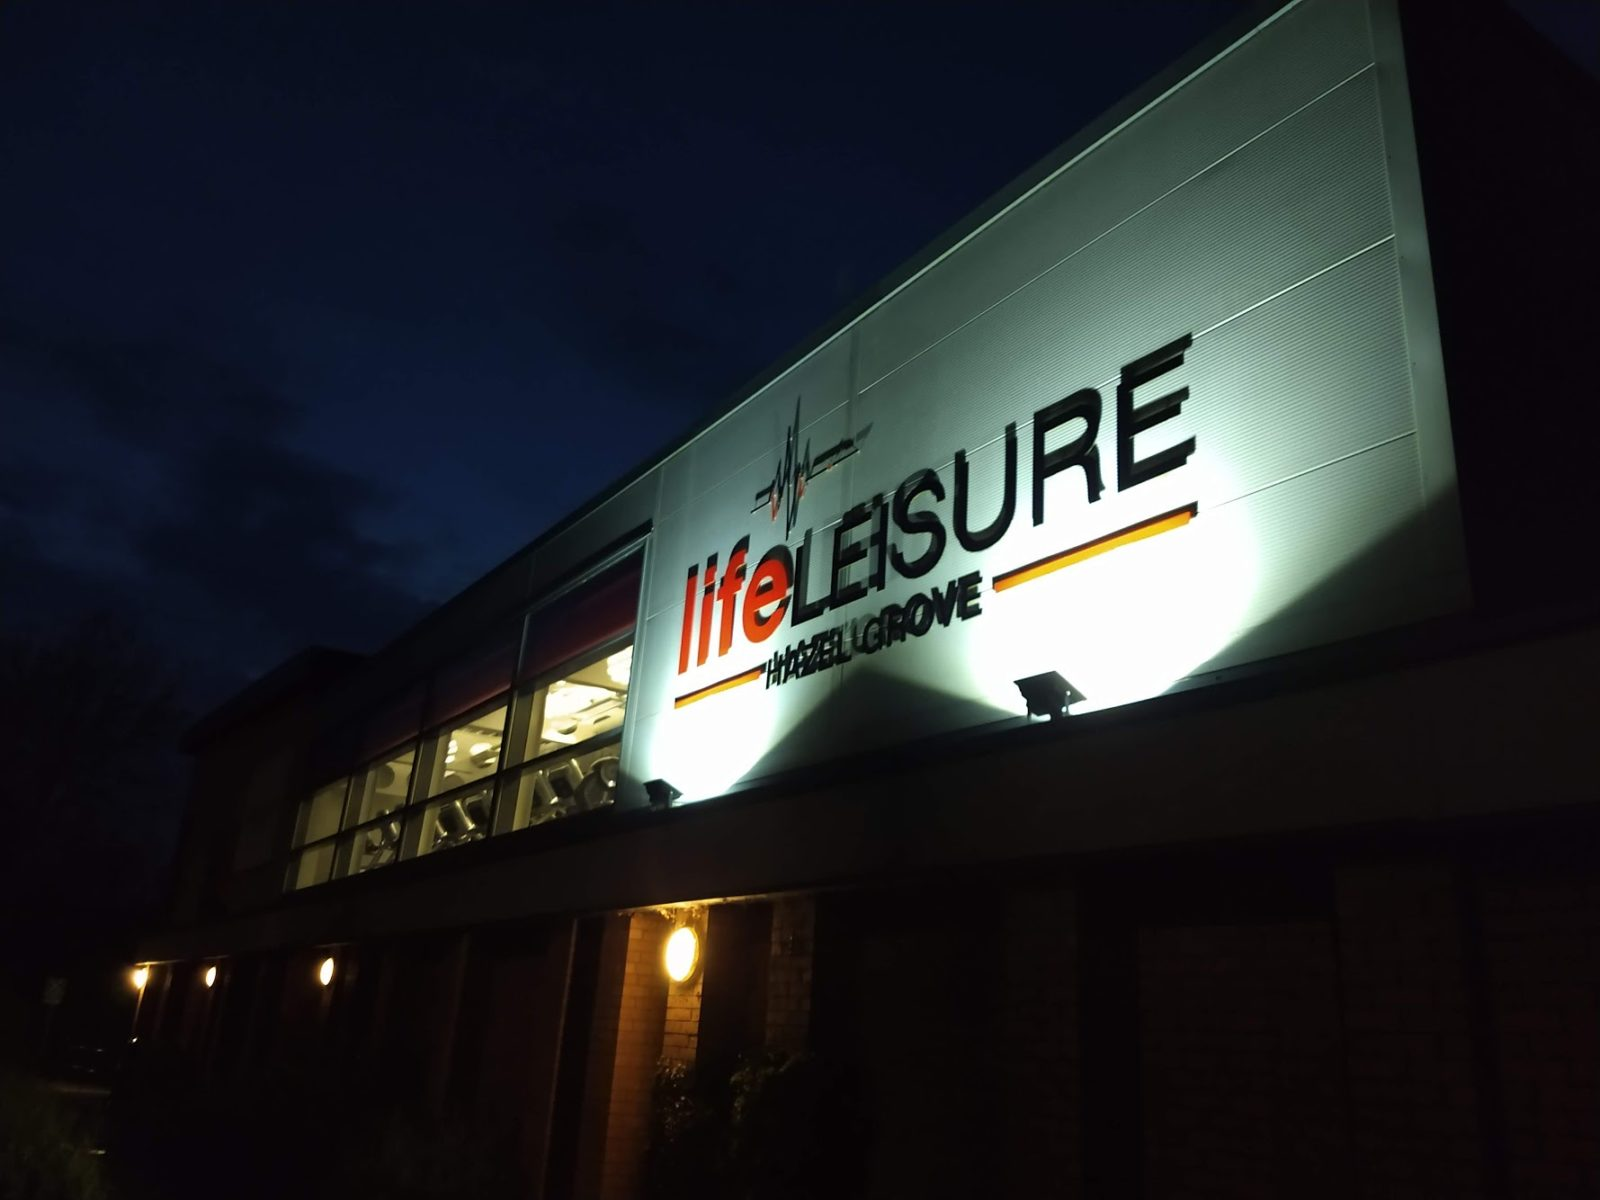 Life Leisure sign lit at night time